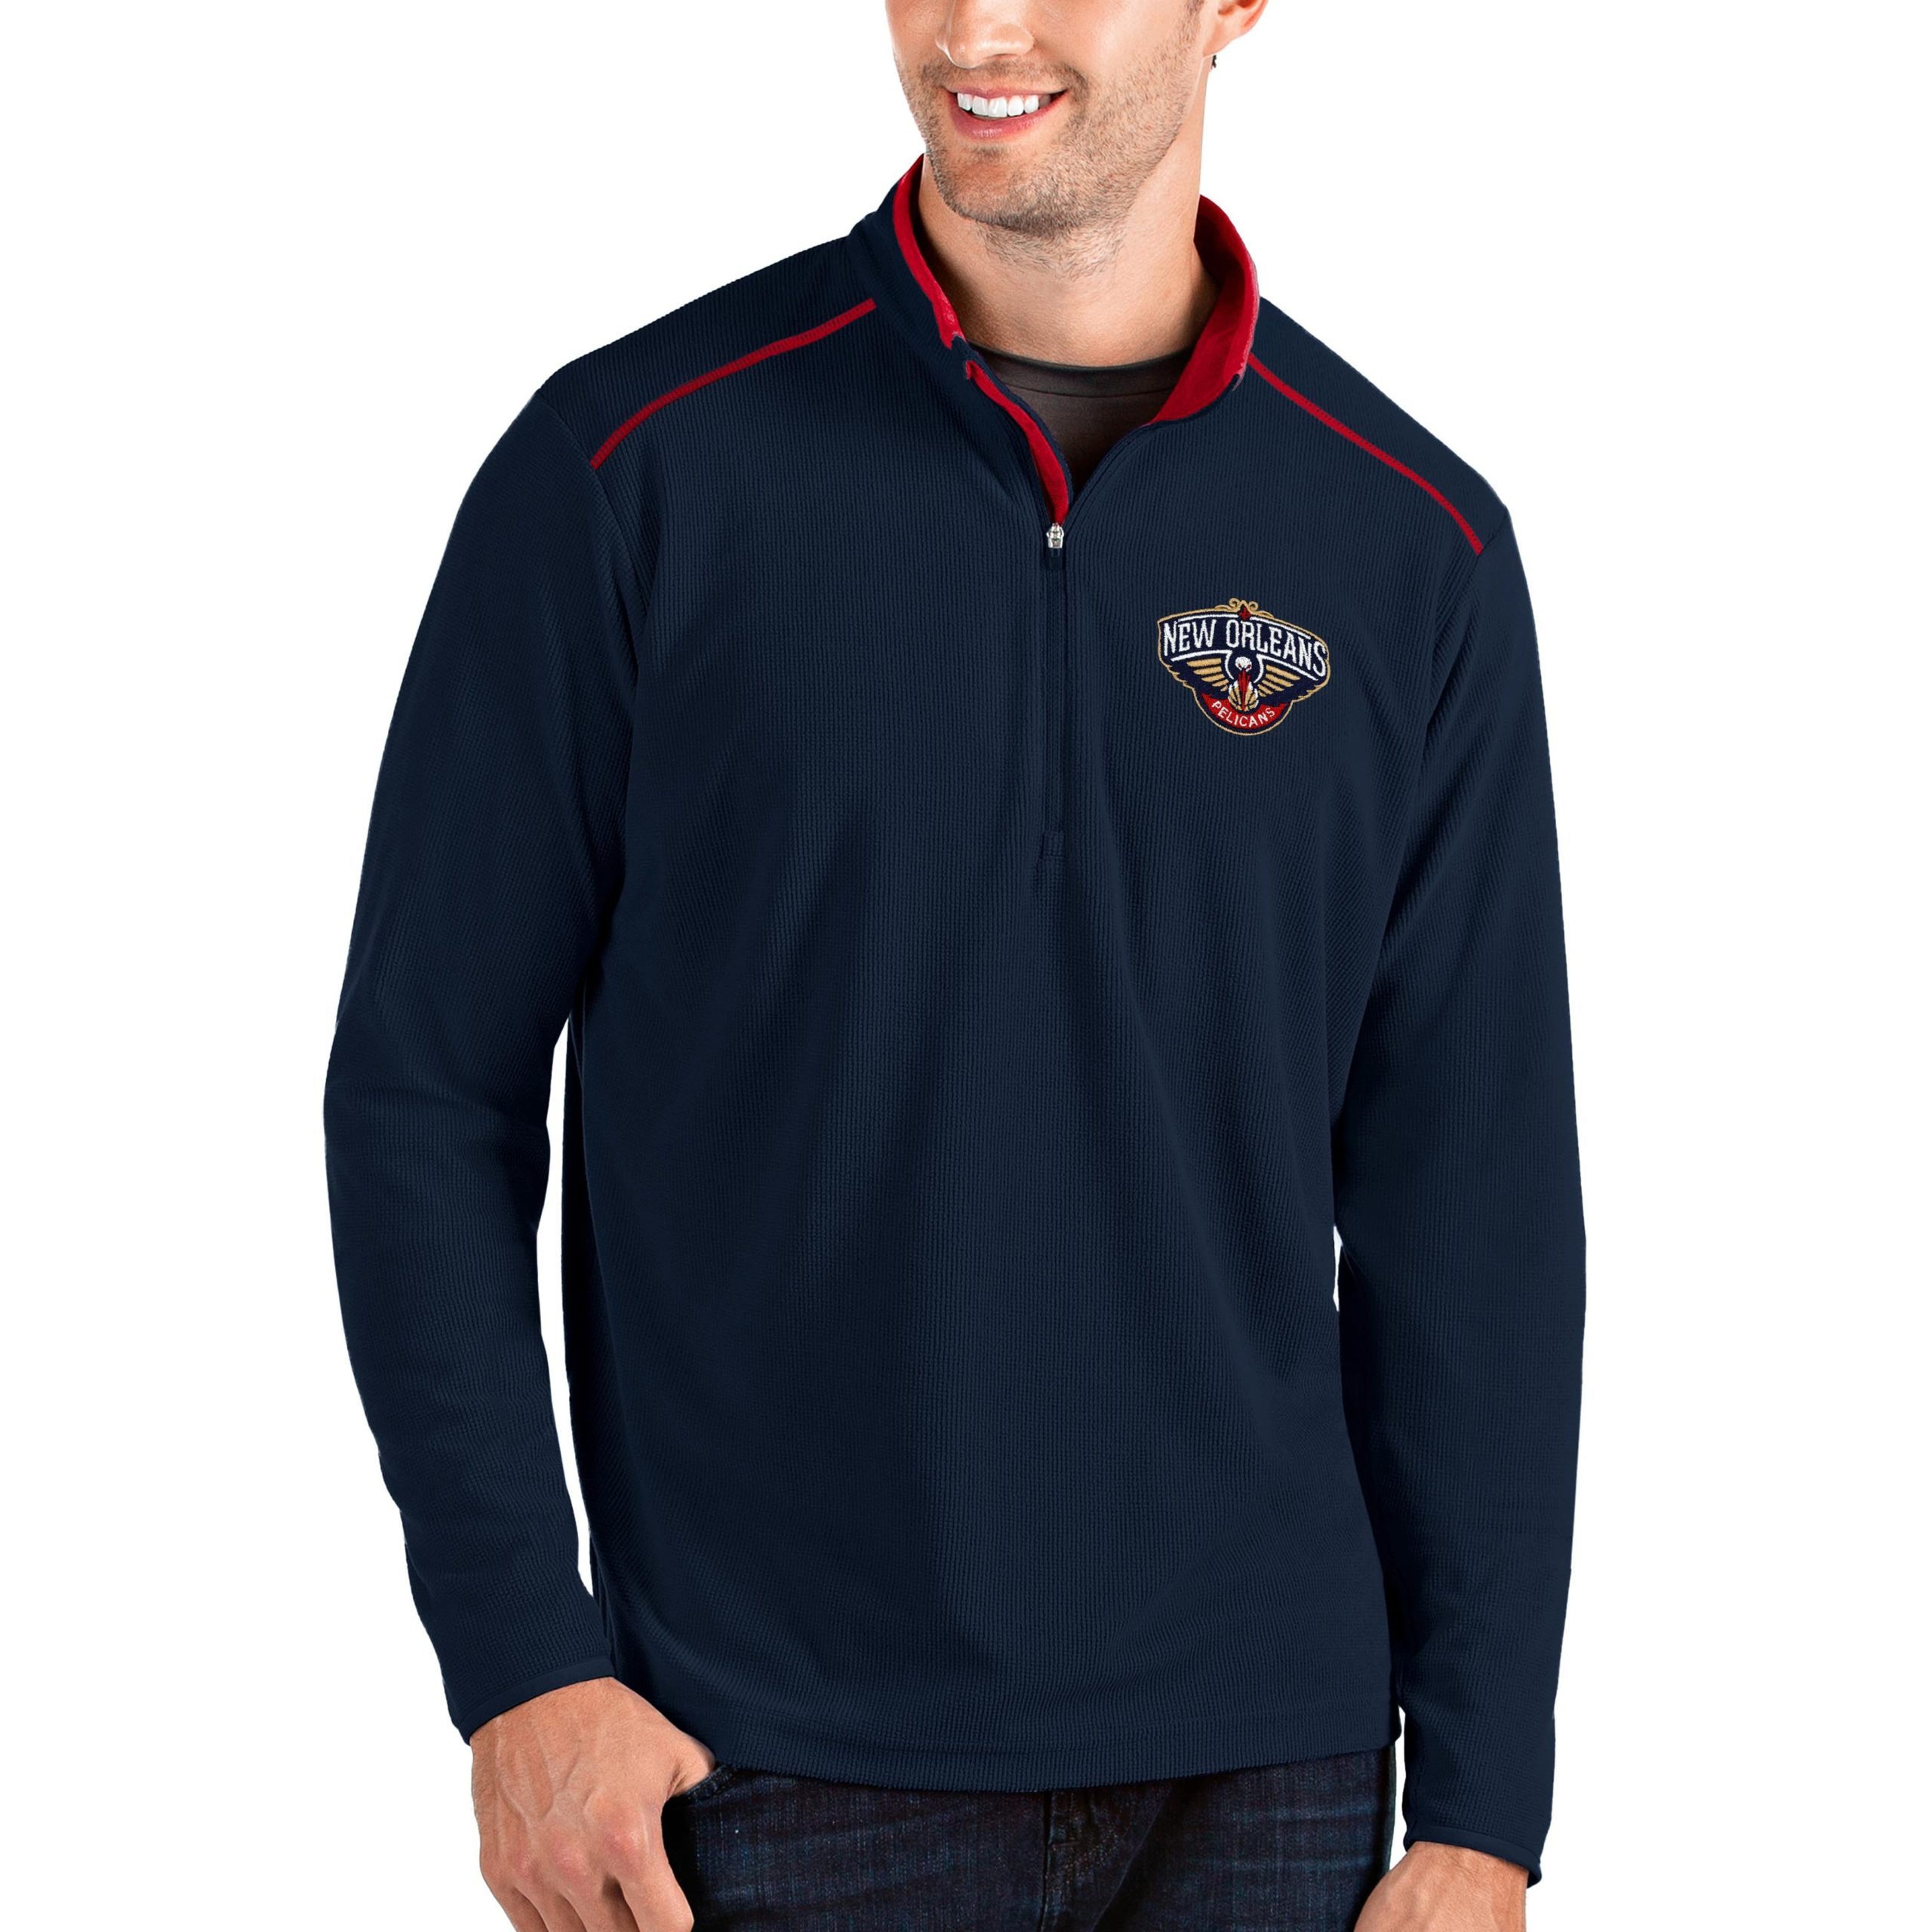 New Orleans Pelicans Antigua Big & Tall Glacier Quarter-Zip Pullover Jacket - Navy/Red